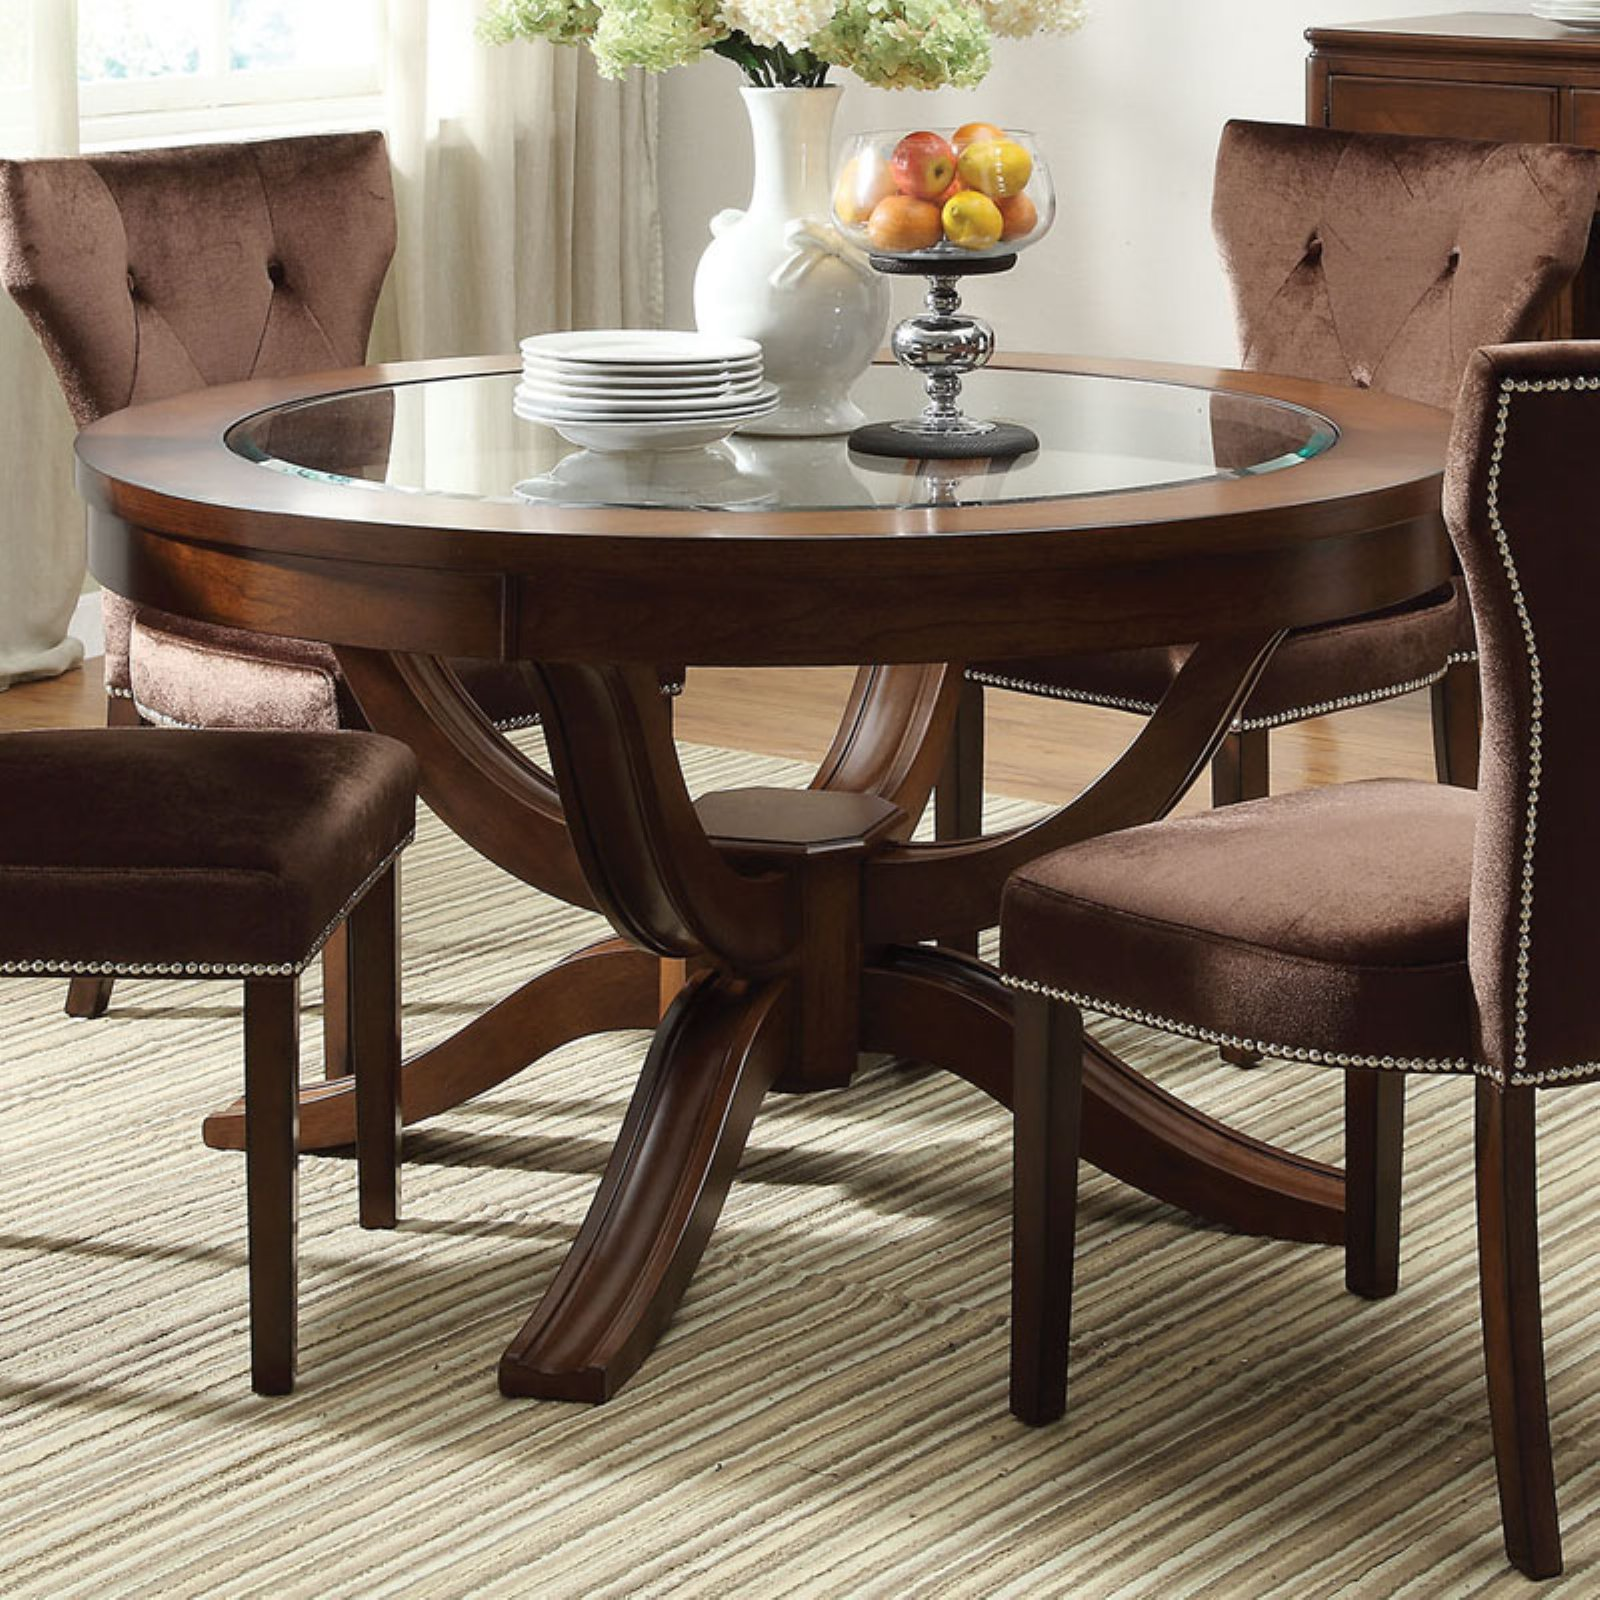 Acme Furniture Kingston Round Dining Table